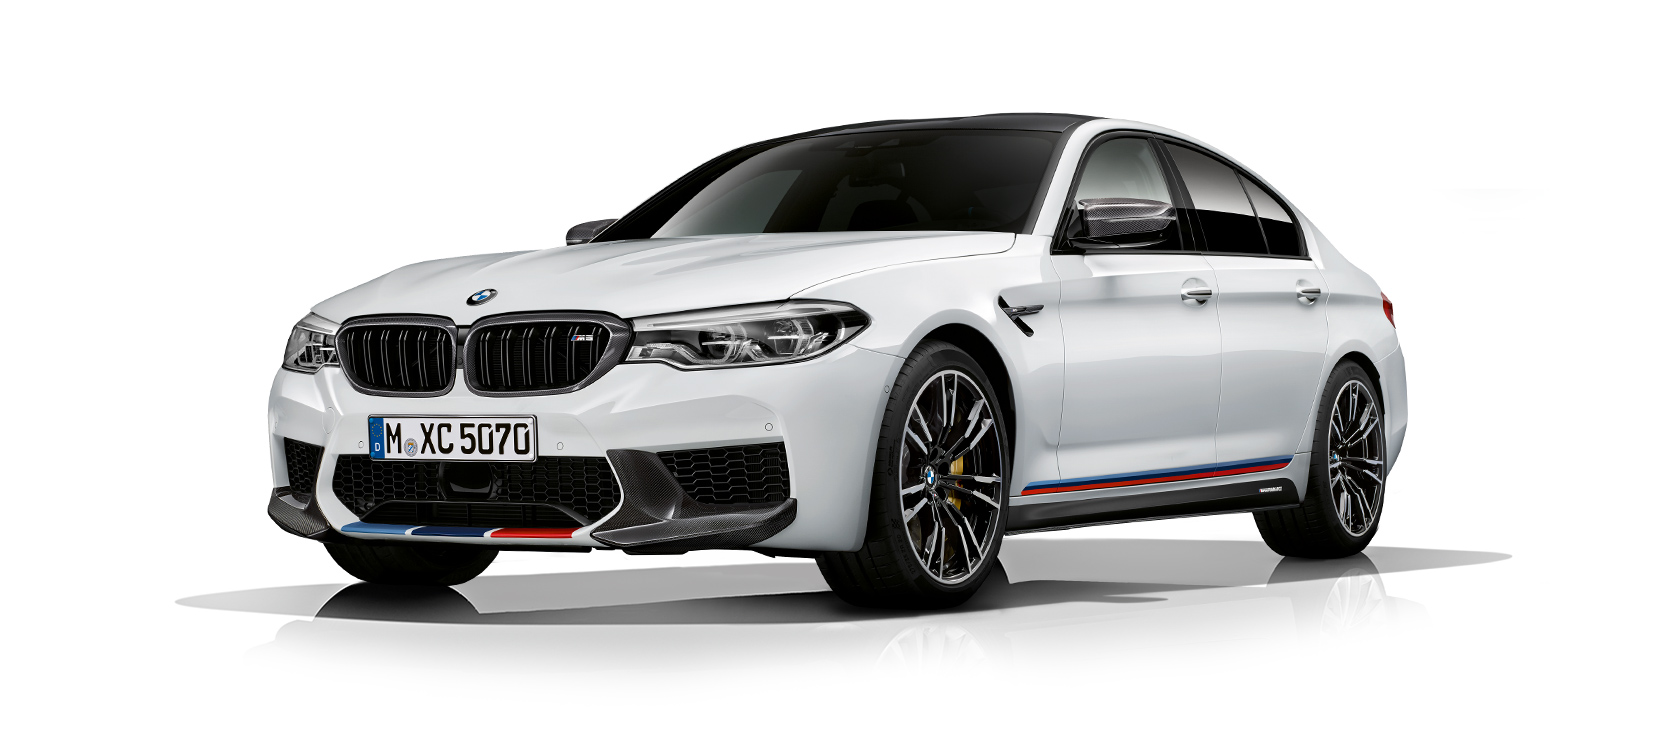 2011 Bmw 328i Accessories >> Bmw M Performance Parts Overview